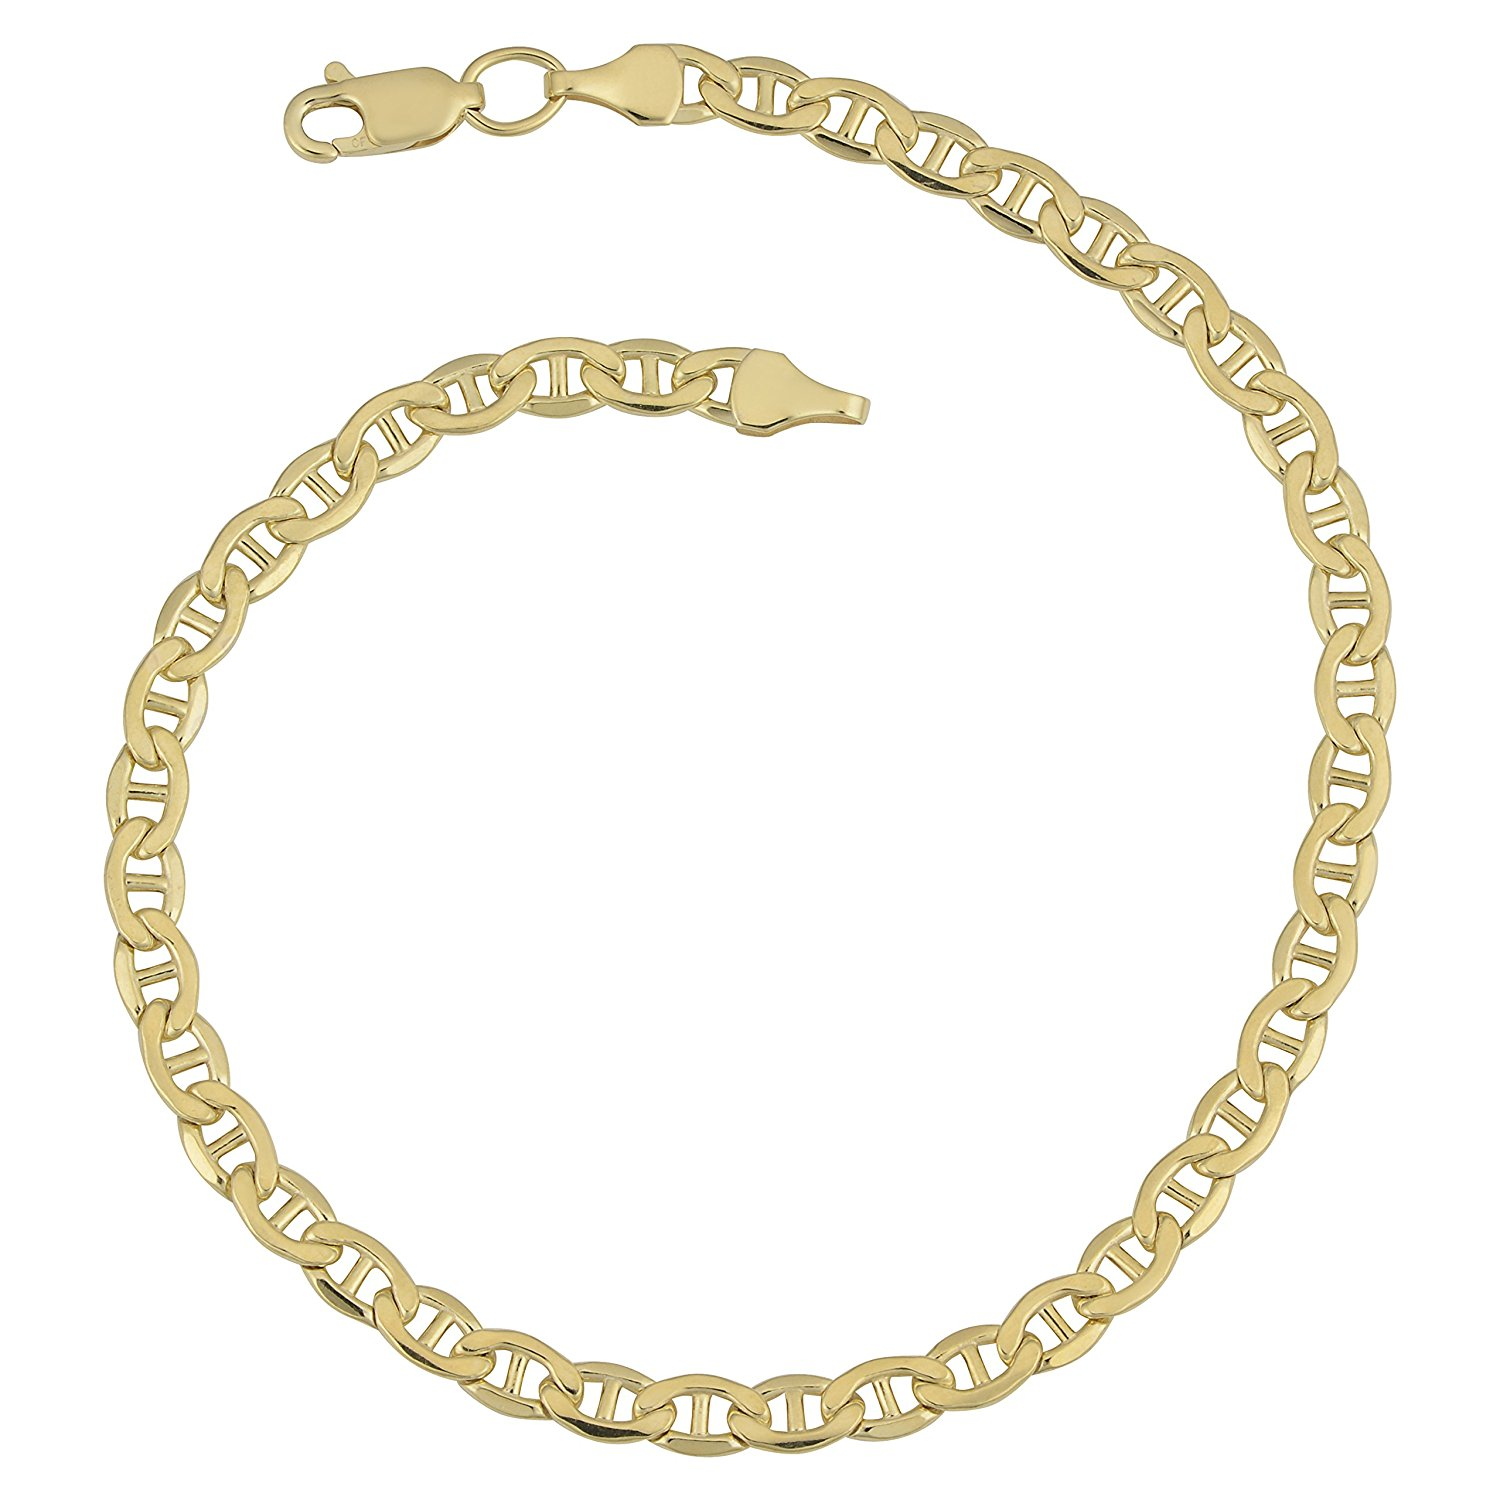 14K Yellow Gold Filled Solid Mariner Chain Bracelet, 4.5 mm, 8.5″